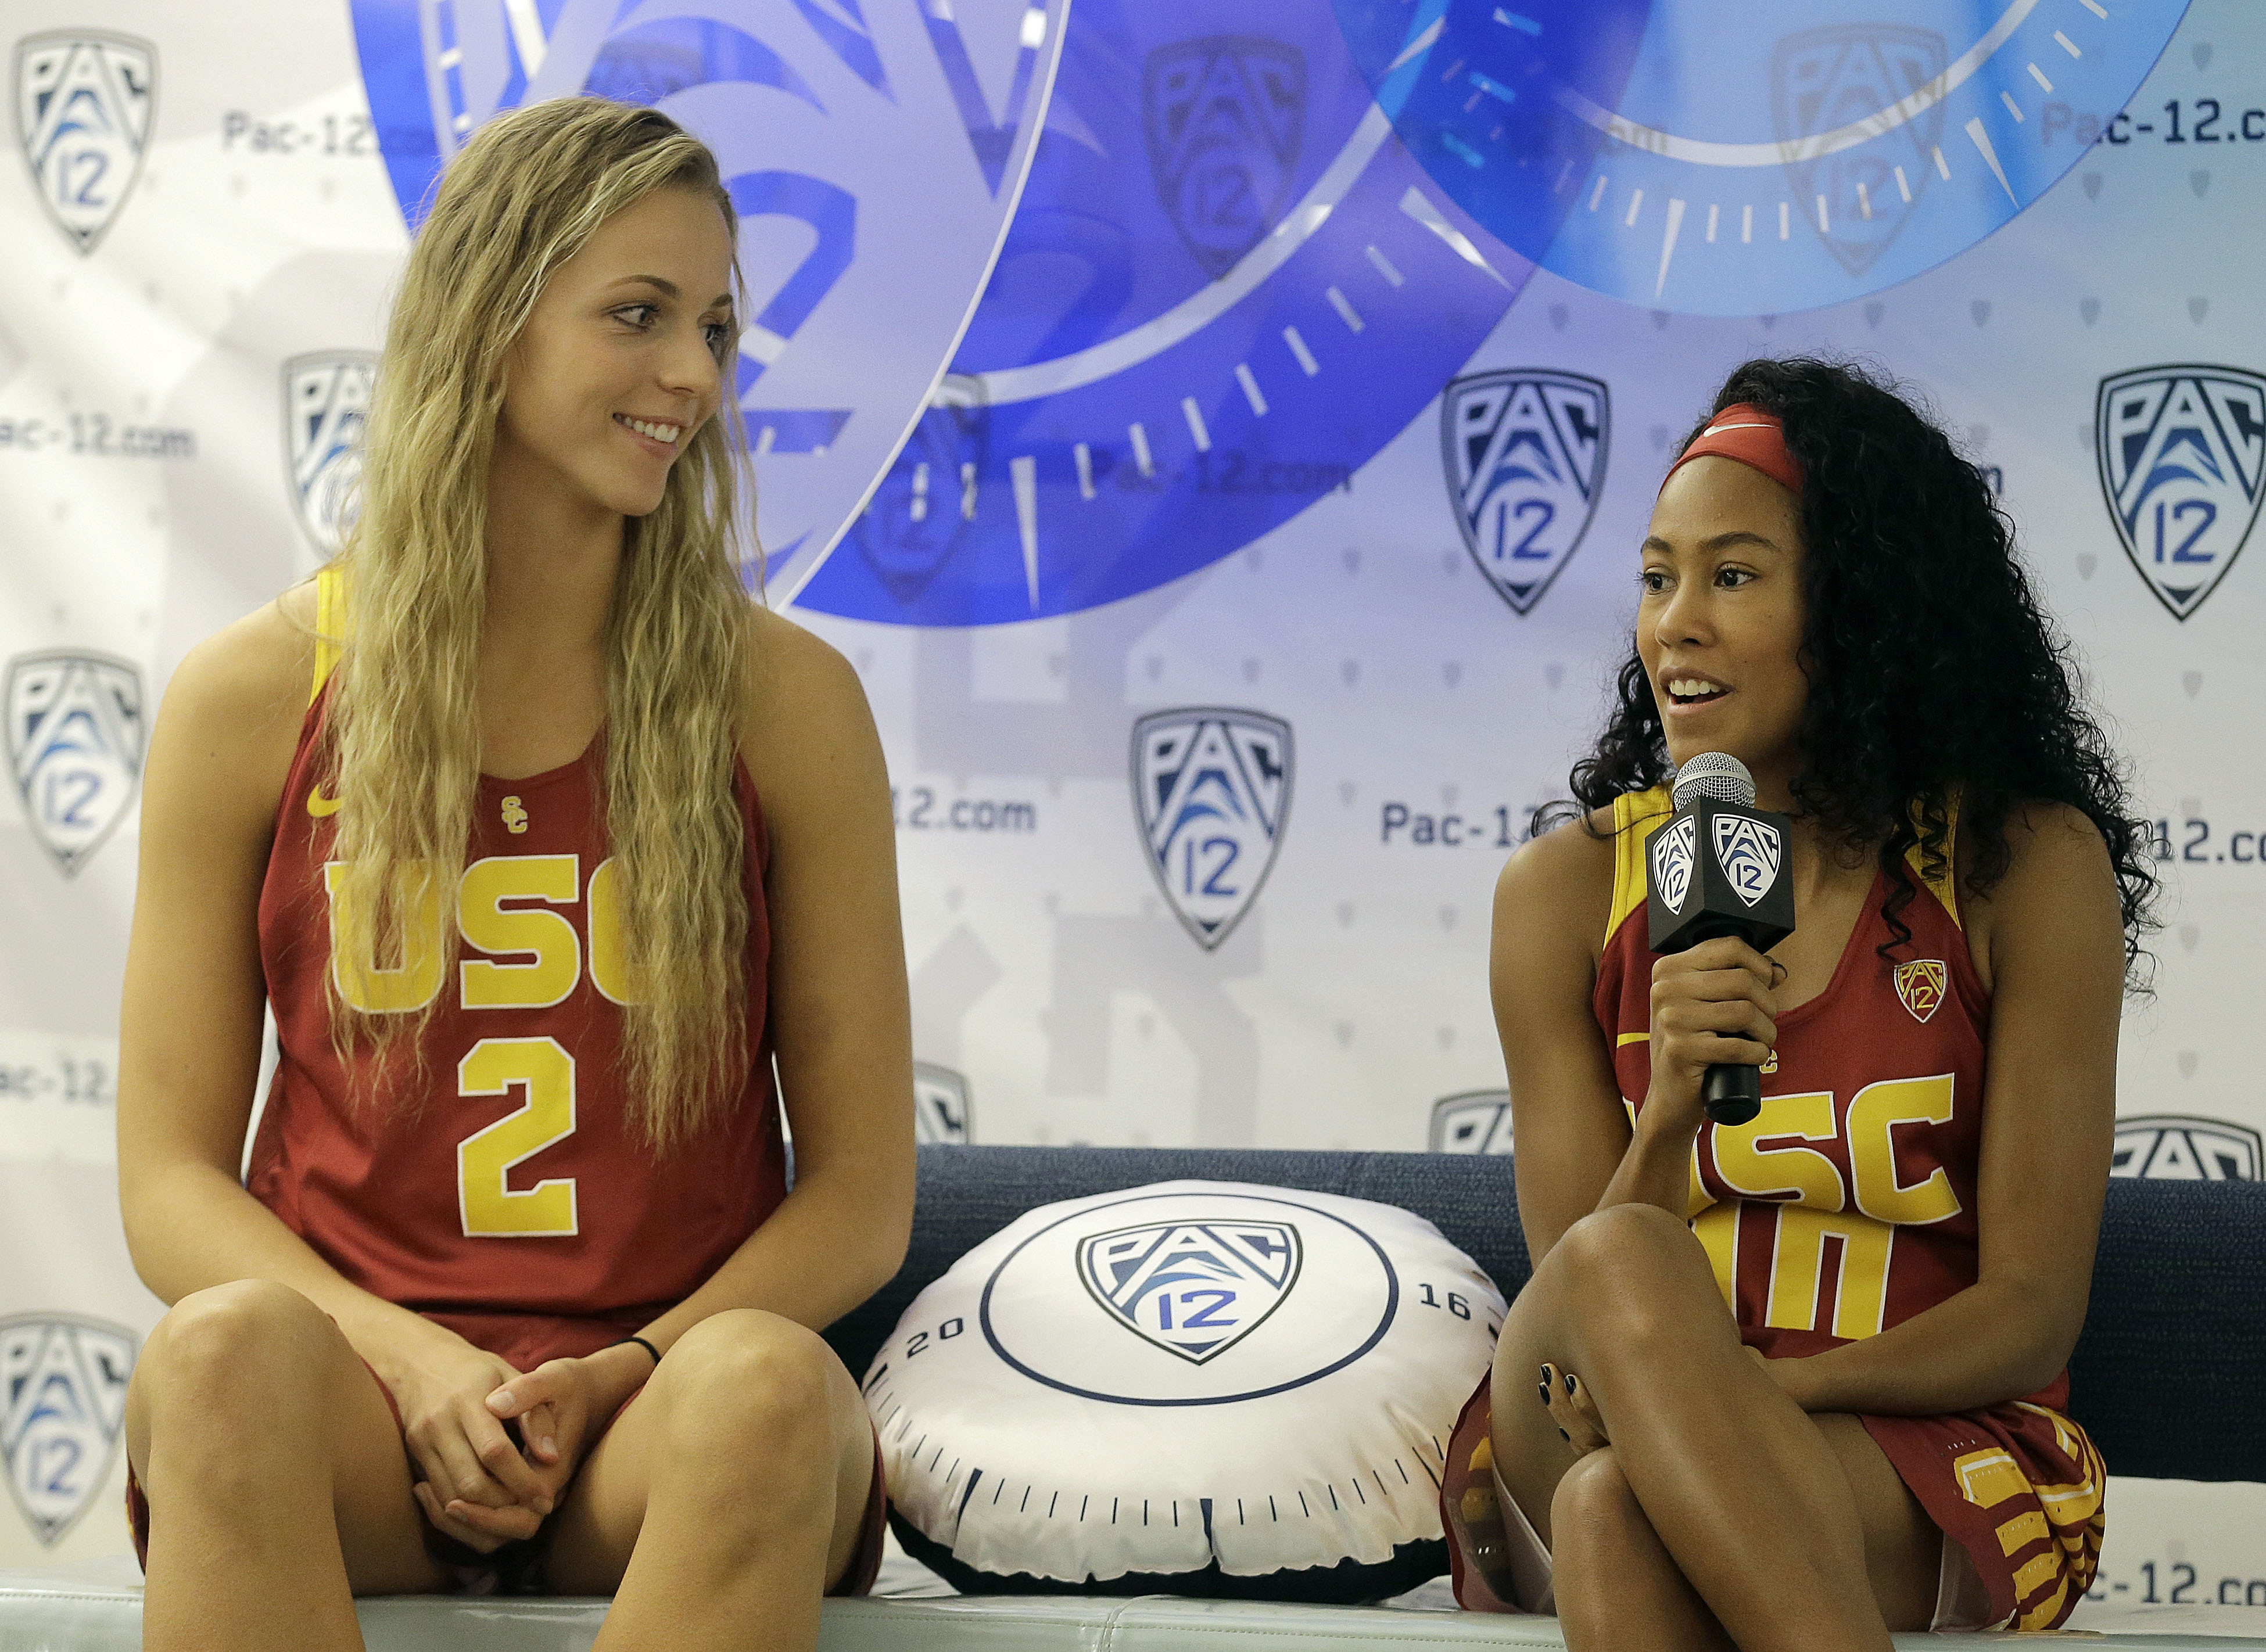 Southern California's Ivana Jakubcova, left, and Courtney Jaco speak during NCAA college basketball Pac-12 media day in San Francisco, Thursday, Oct. 20, 2016. (AP Photo/Jeff Chiu)